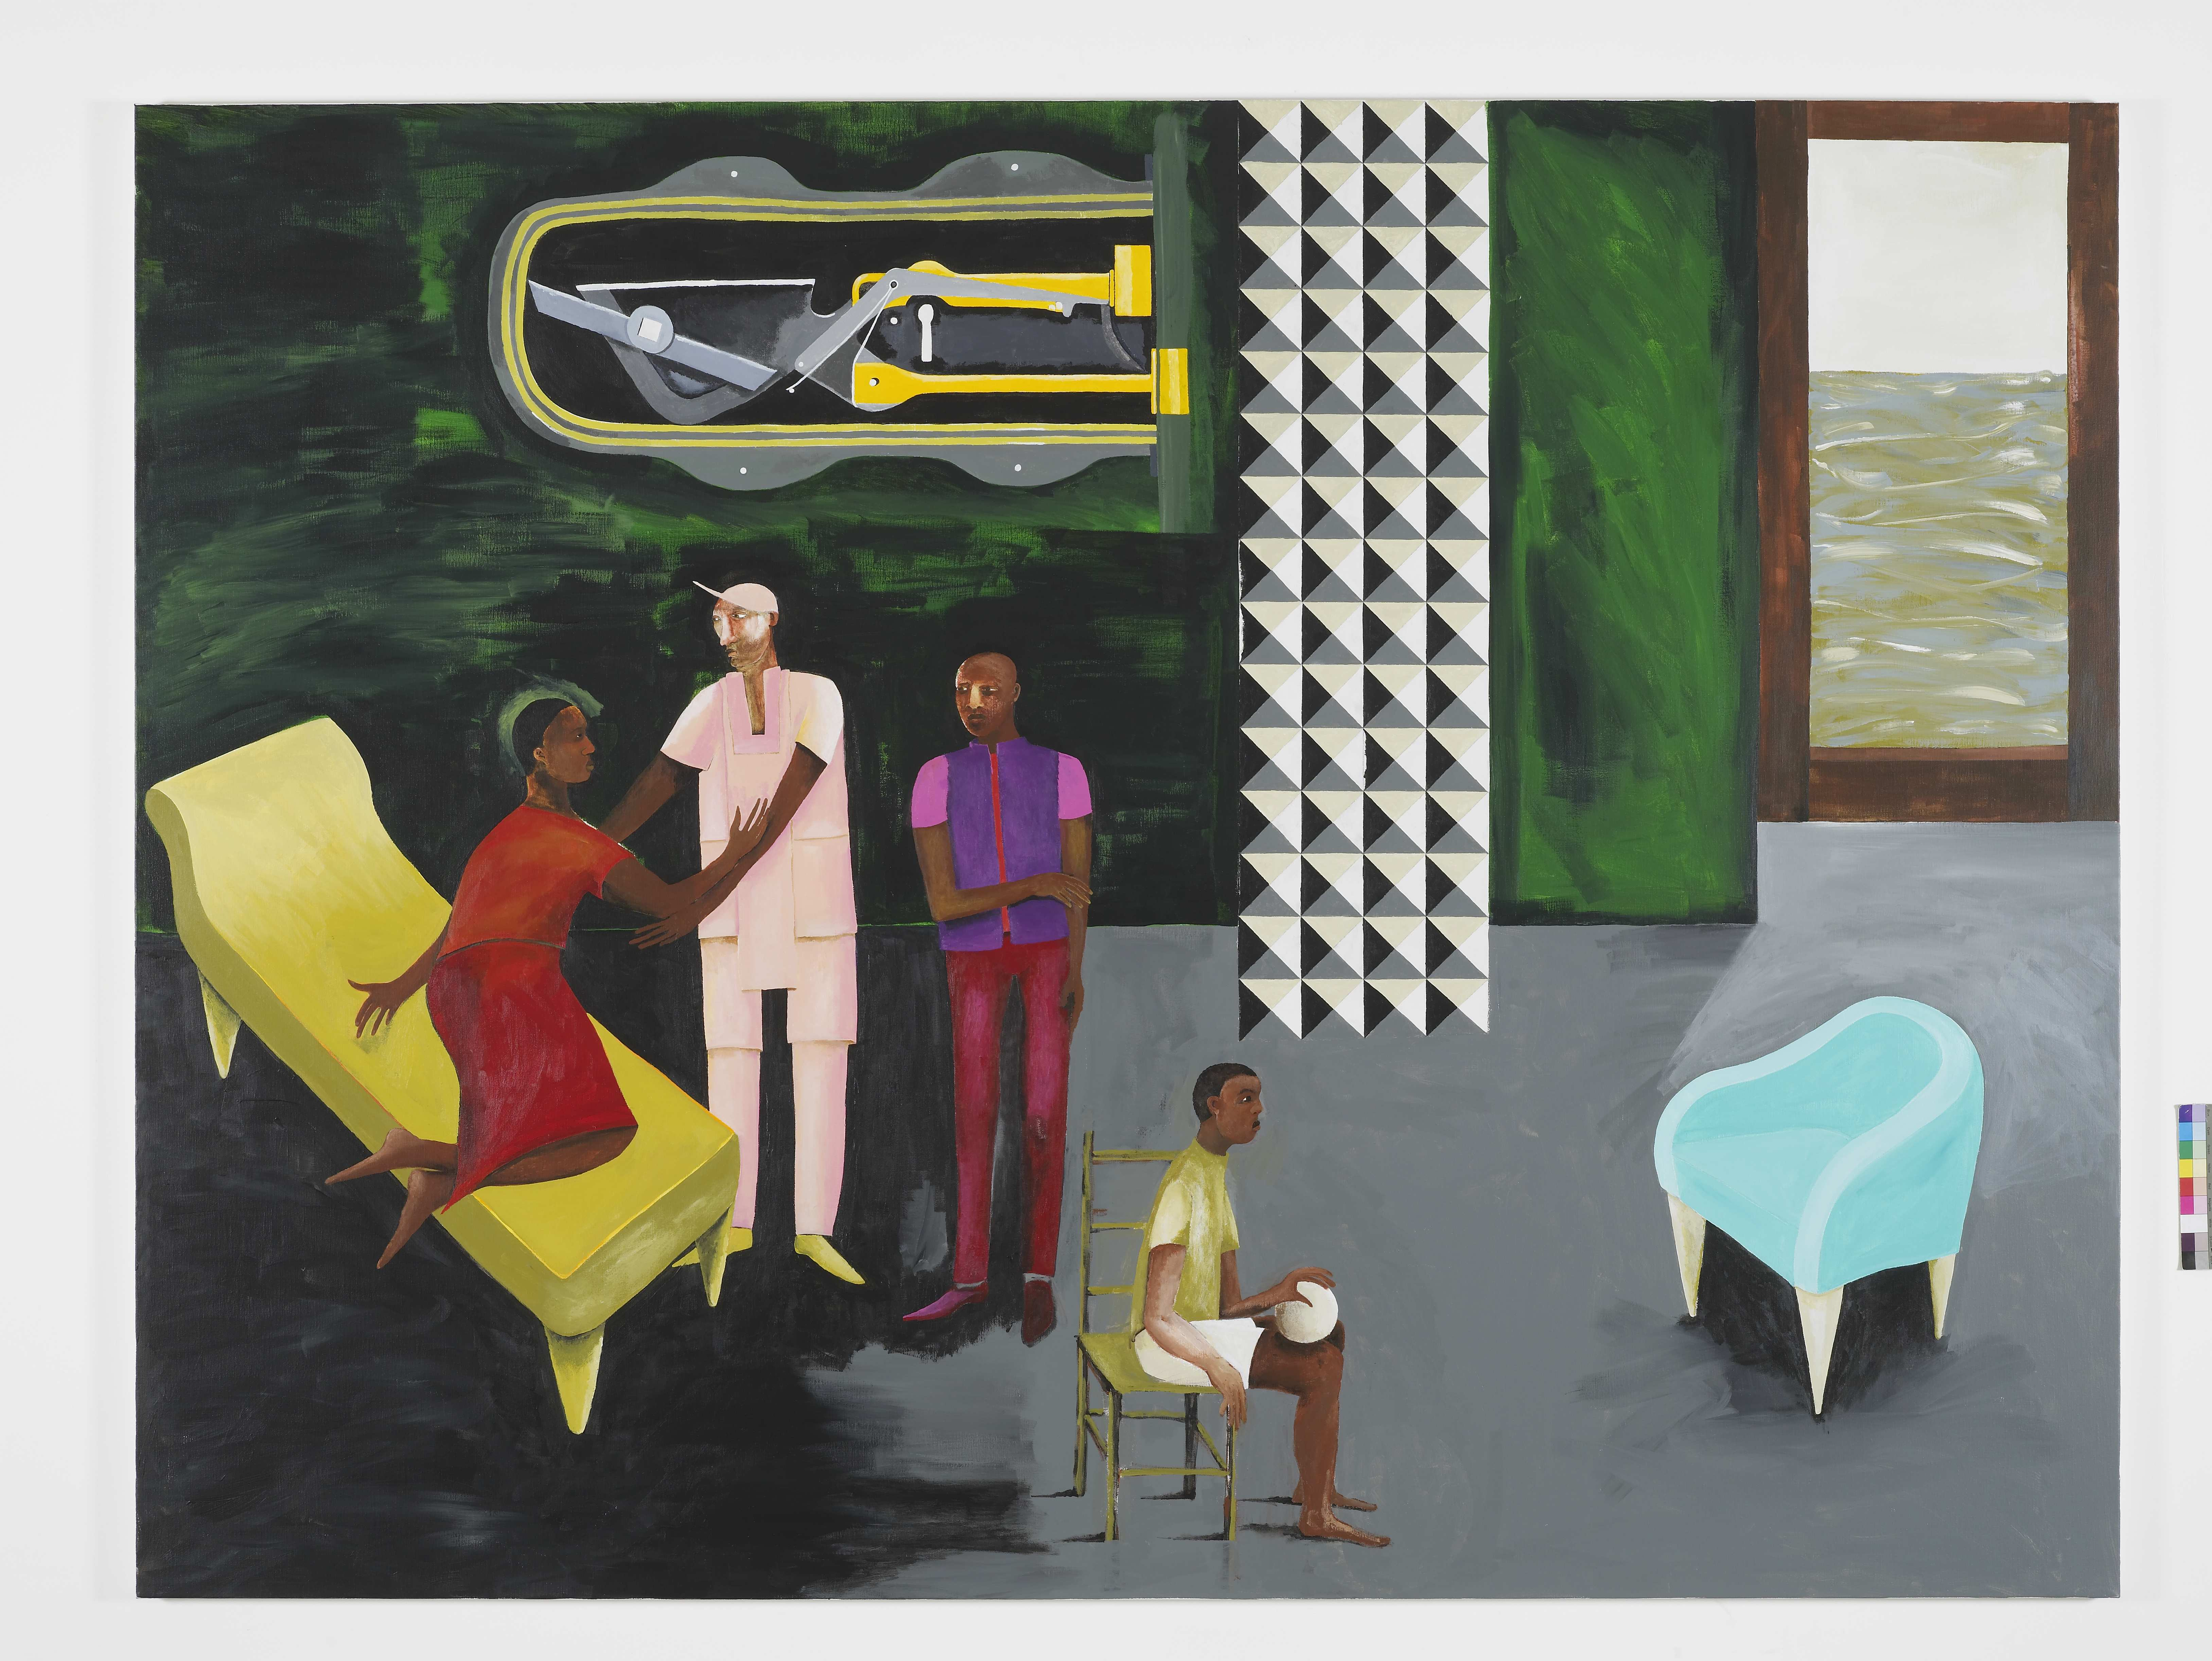 Lubaina Himid, Le Rodeur: (The Lock), 2016. Courtesy of the artist and Hollybush Gardens